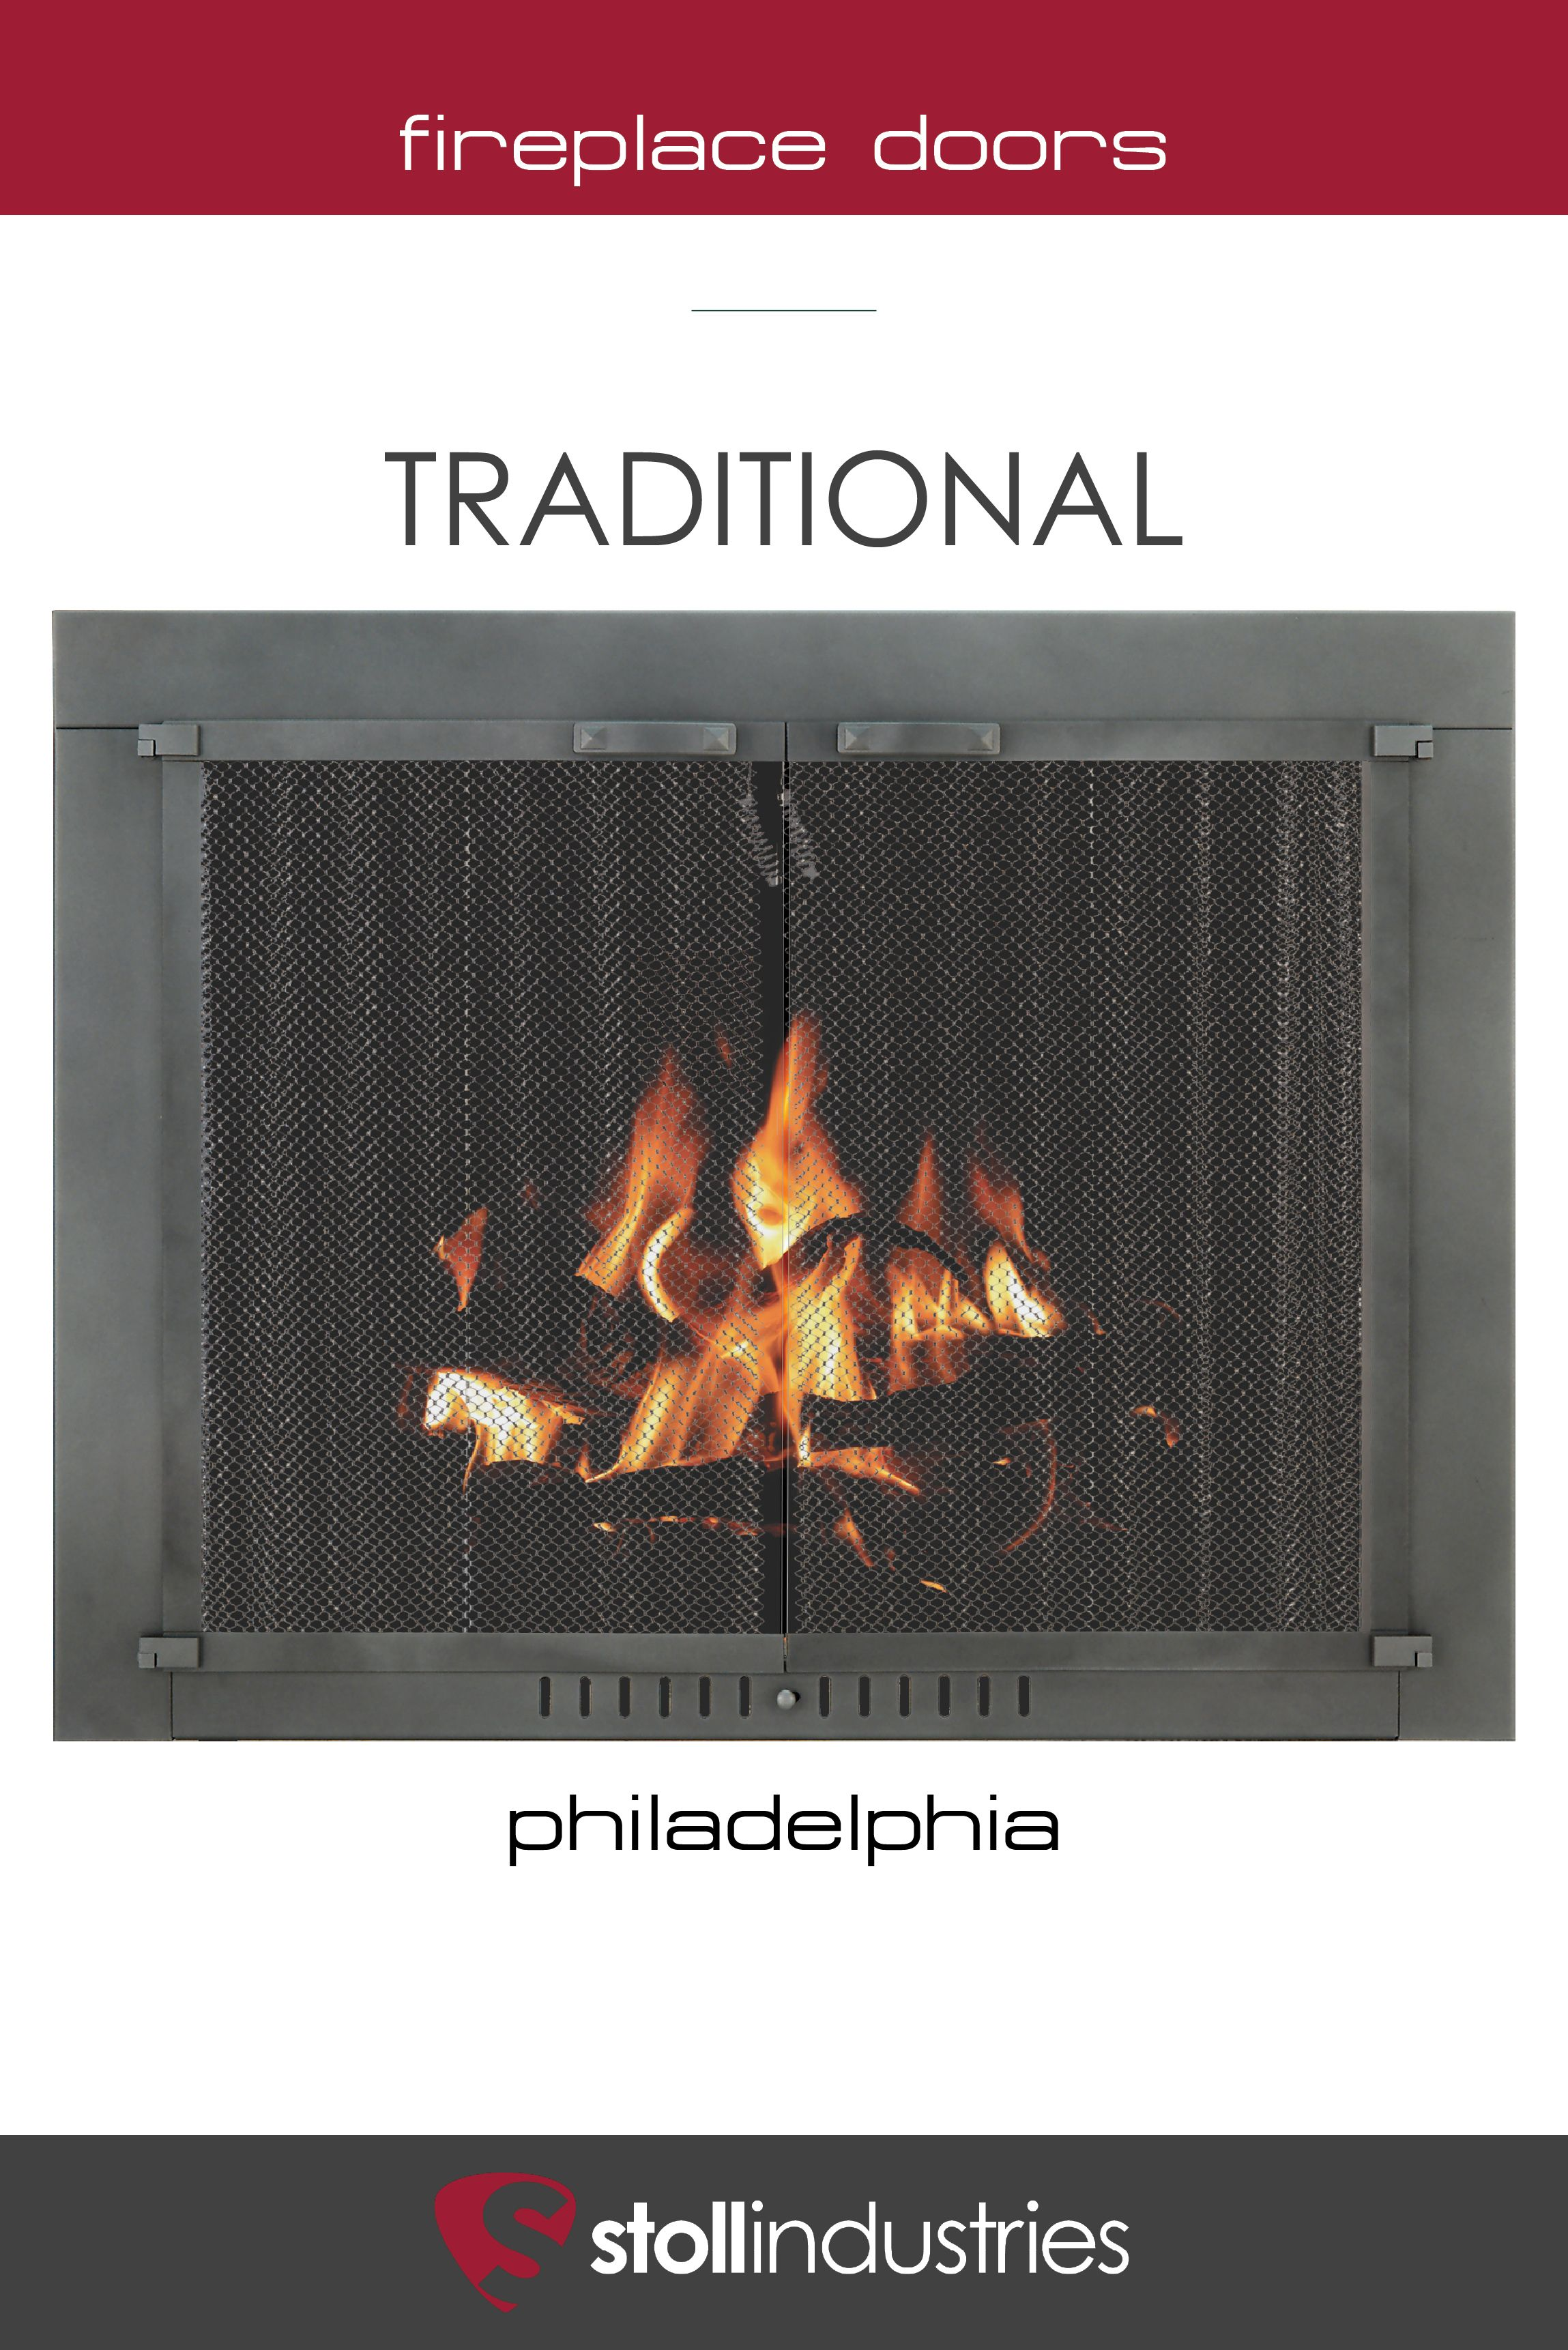 Pin By Stoll Industries On Fireplace Doors Our Products